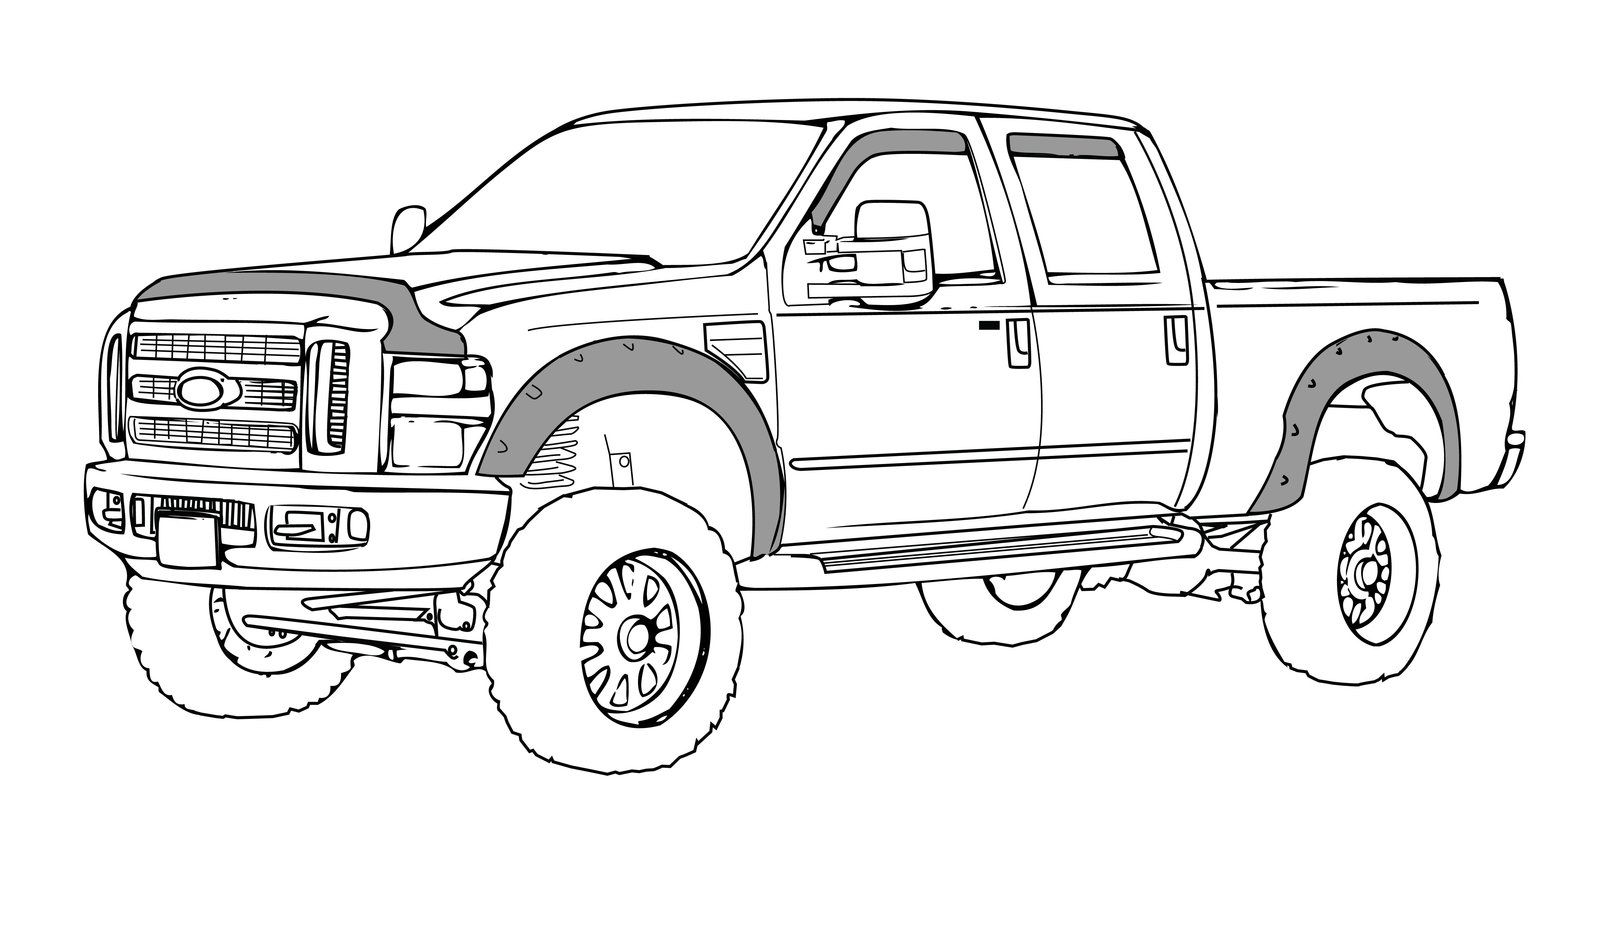 350 Ford Truck Drawings Sketch Coloring Page Truck Coloring Pages Monster Truck Coloring Pages Jacked Up Trucks